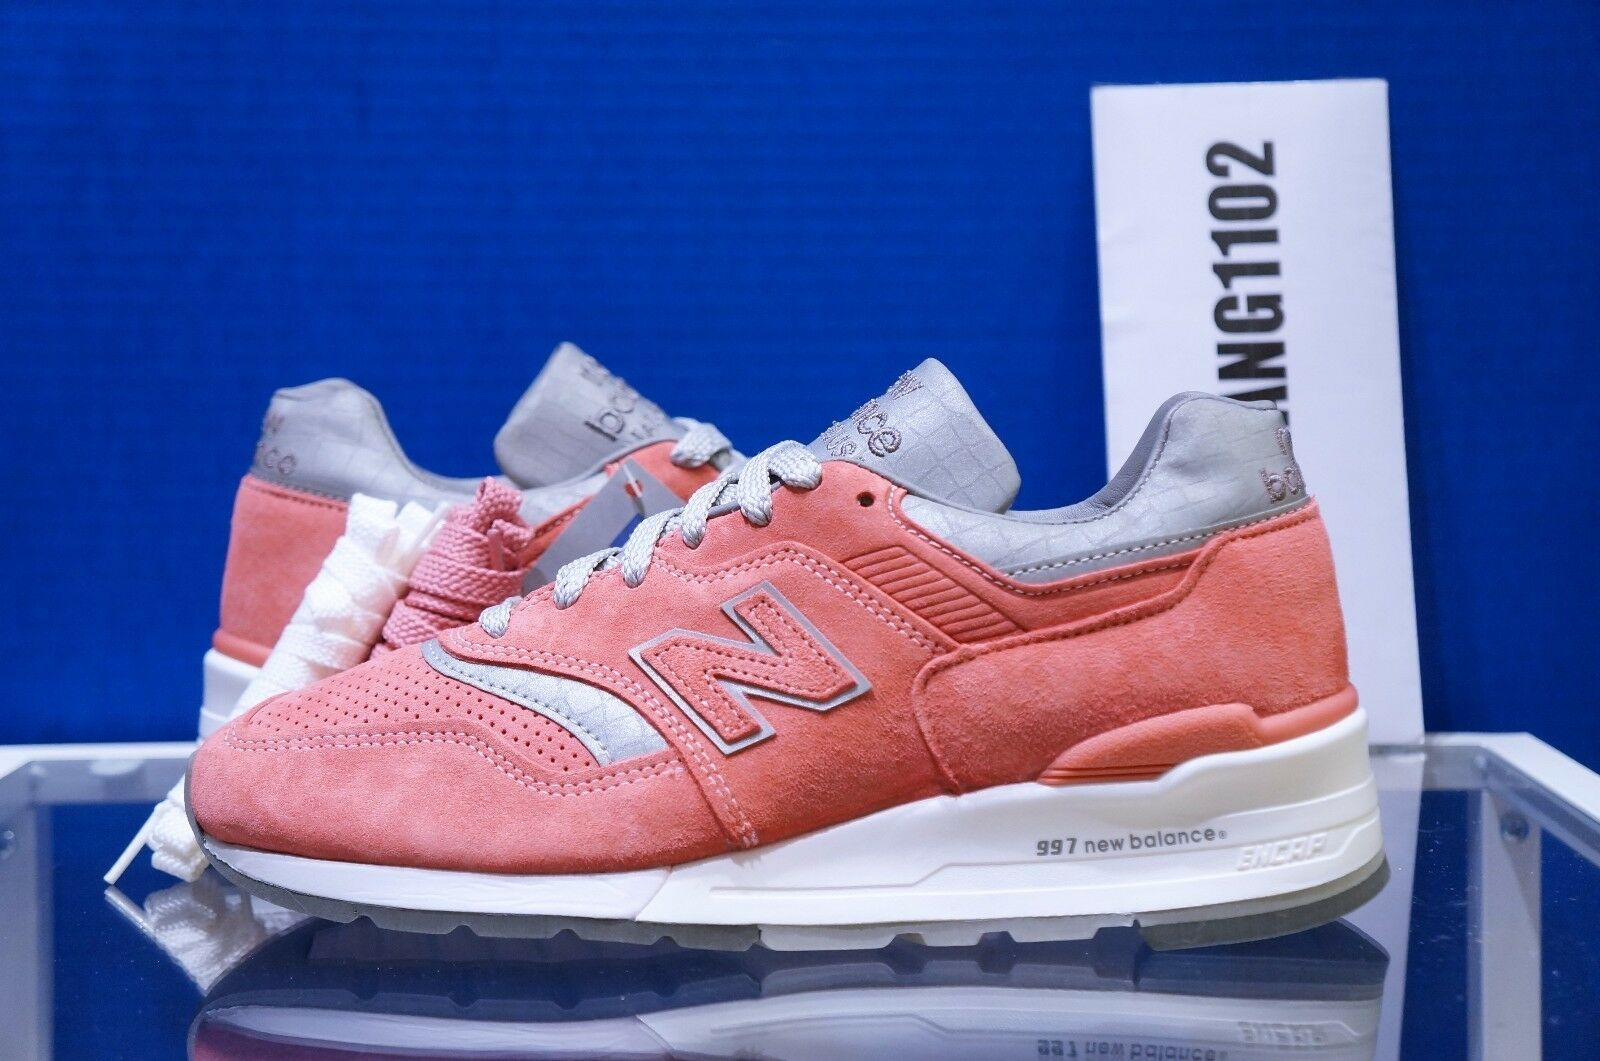 SPECIAL BOX New Balance Concepts CNCPTS 997 Rose Silver Pink M997CPT 5.5 - 9.5